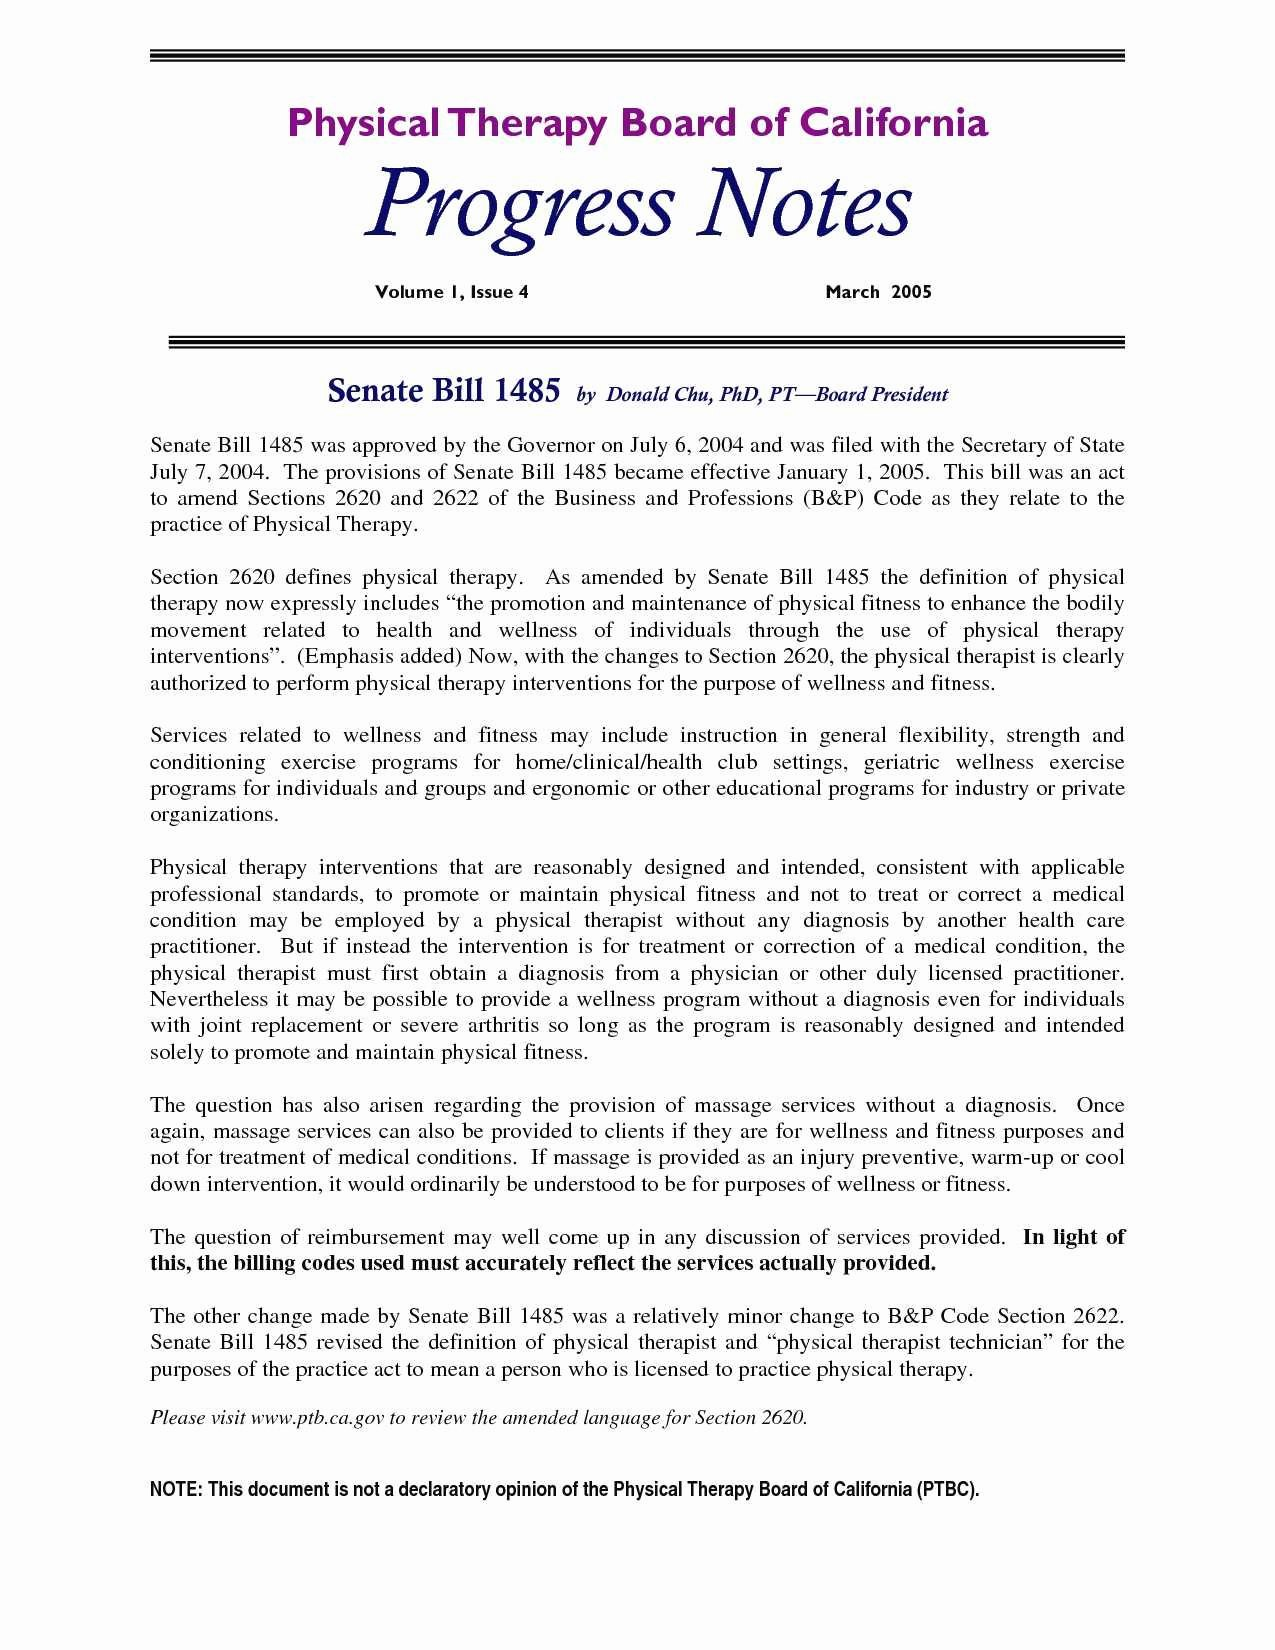 Soap therapy Note Template Best Of therapist Notes Template Fresh soap Note Example